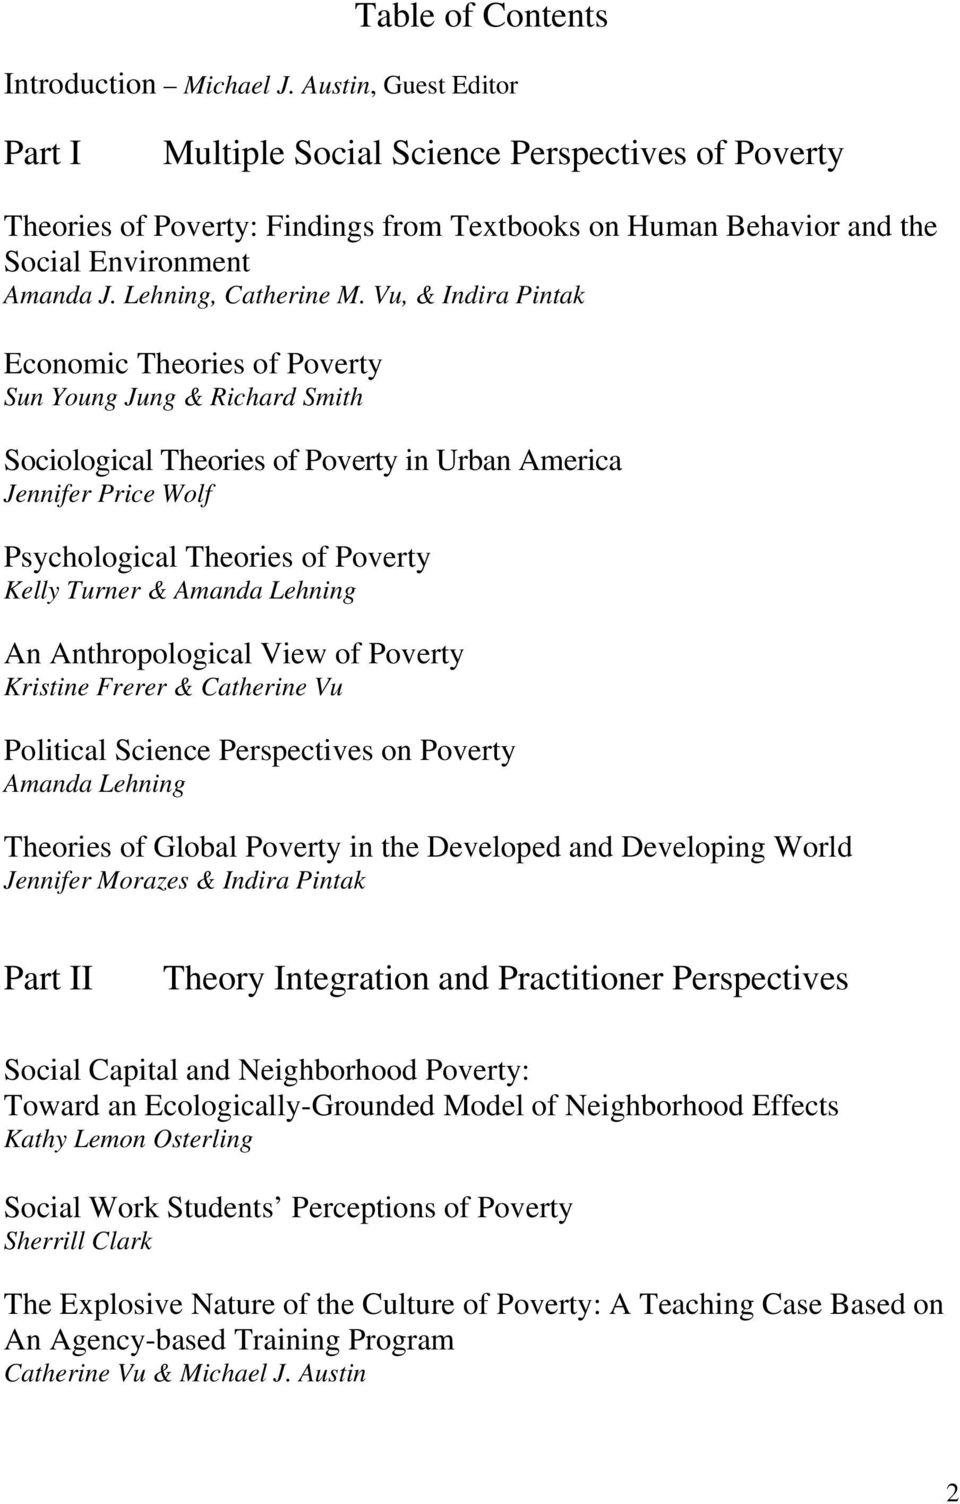 Vu, & Indira Pintak Economic Theories of Poverty Sun Young Jung & Richard Smith Sociological Theories of Poverty in Urban America Jennifer Price Wolf Psychological Theories of Poverty Kelly Turner &